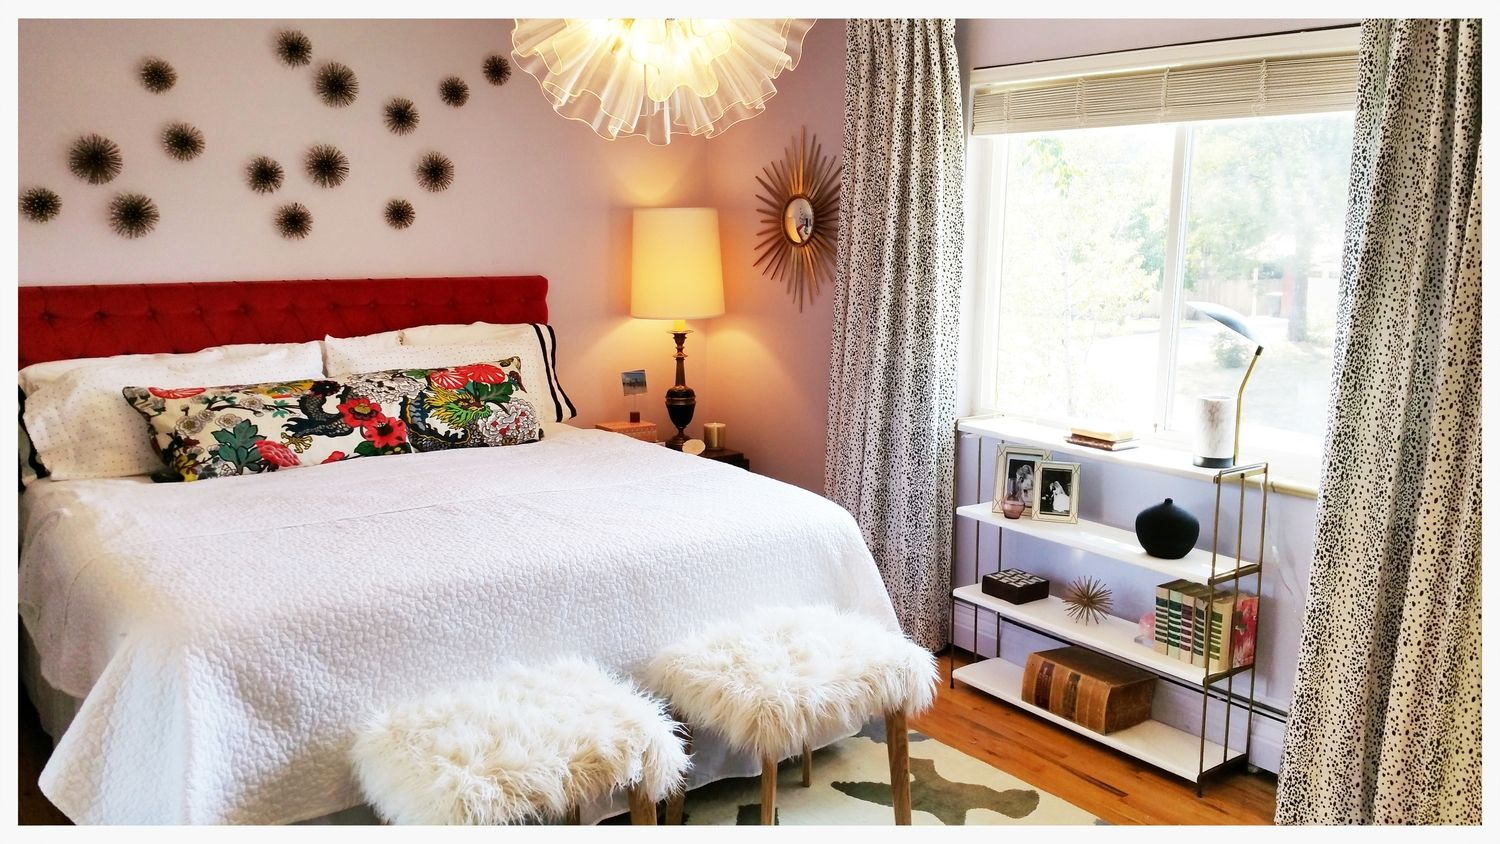 Bright and colorful master bedroom with statement light